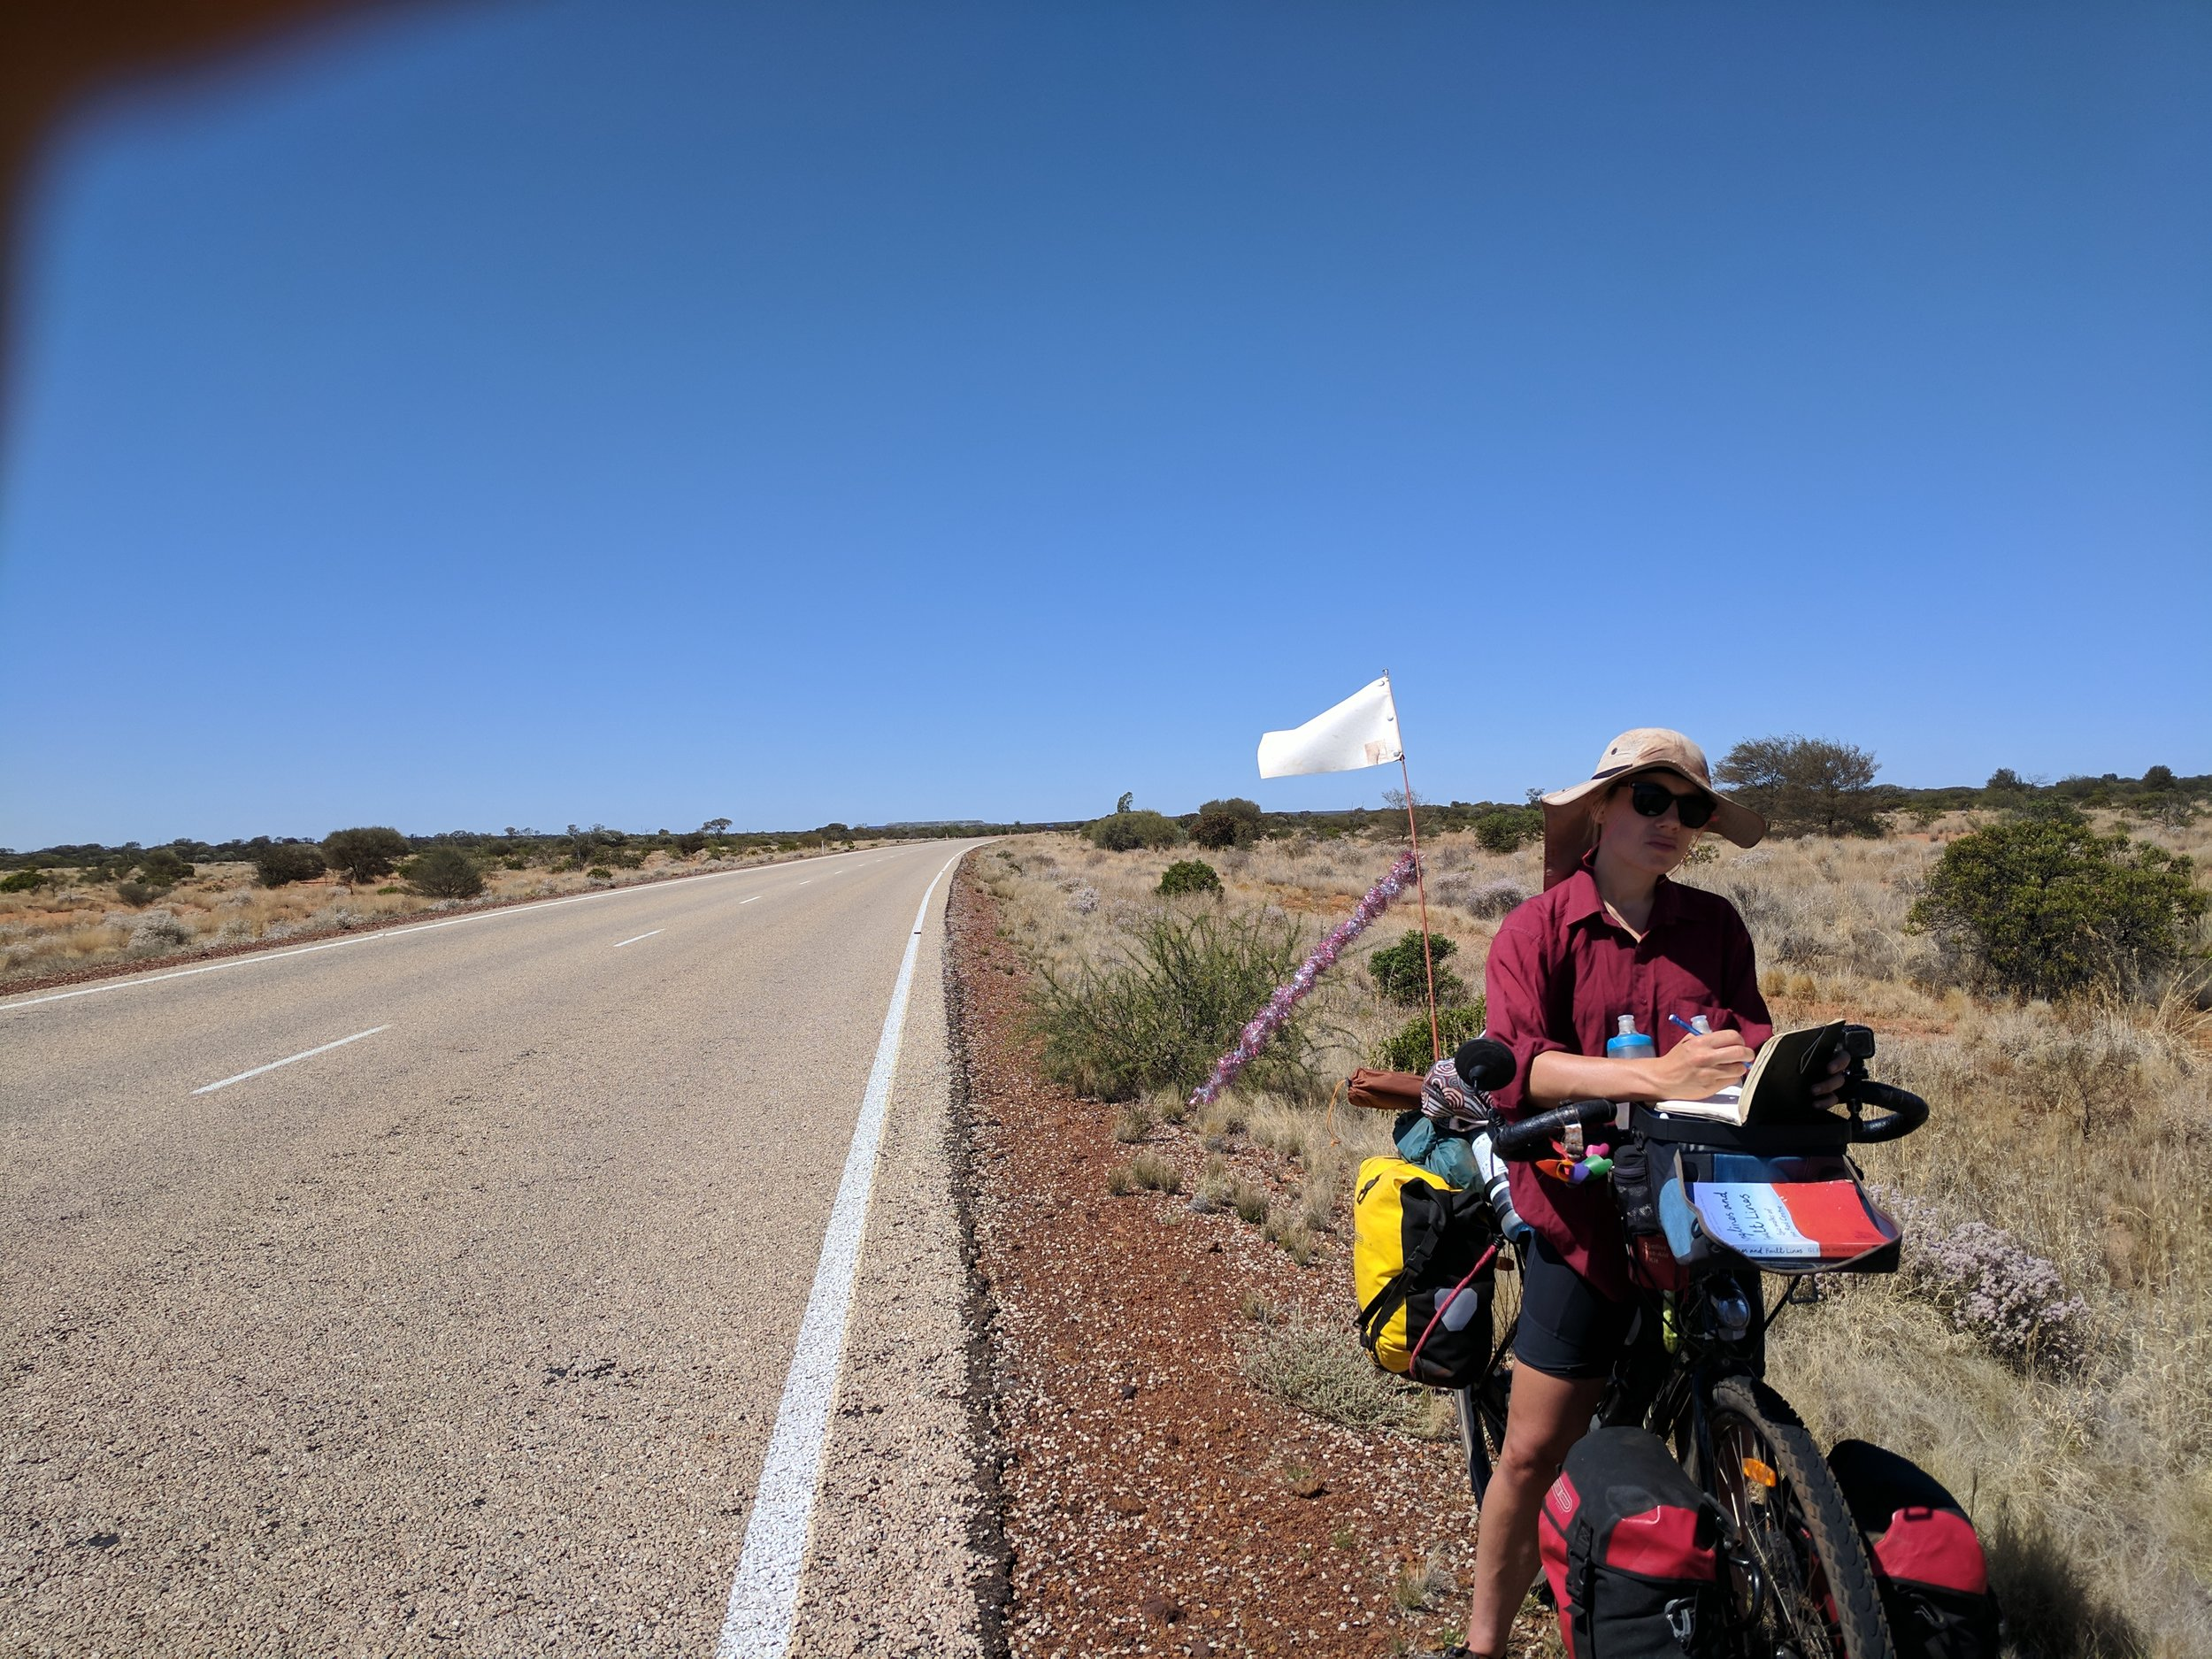 The usual, stopping road side & drawing. The unusual, man made mesas rise